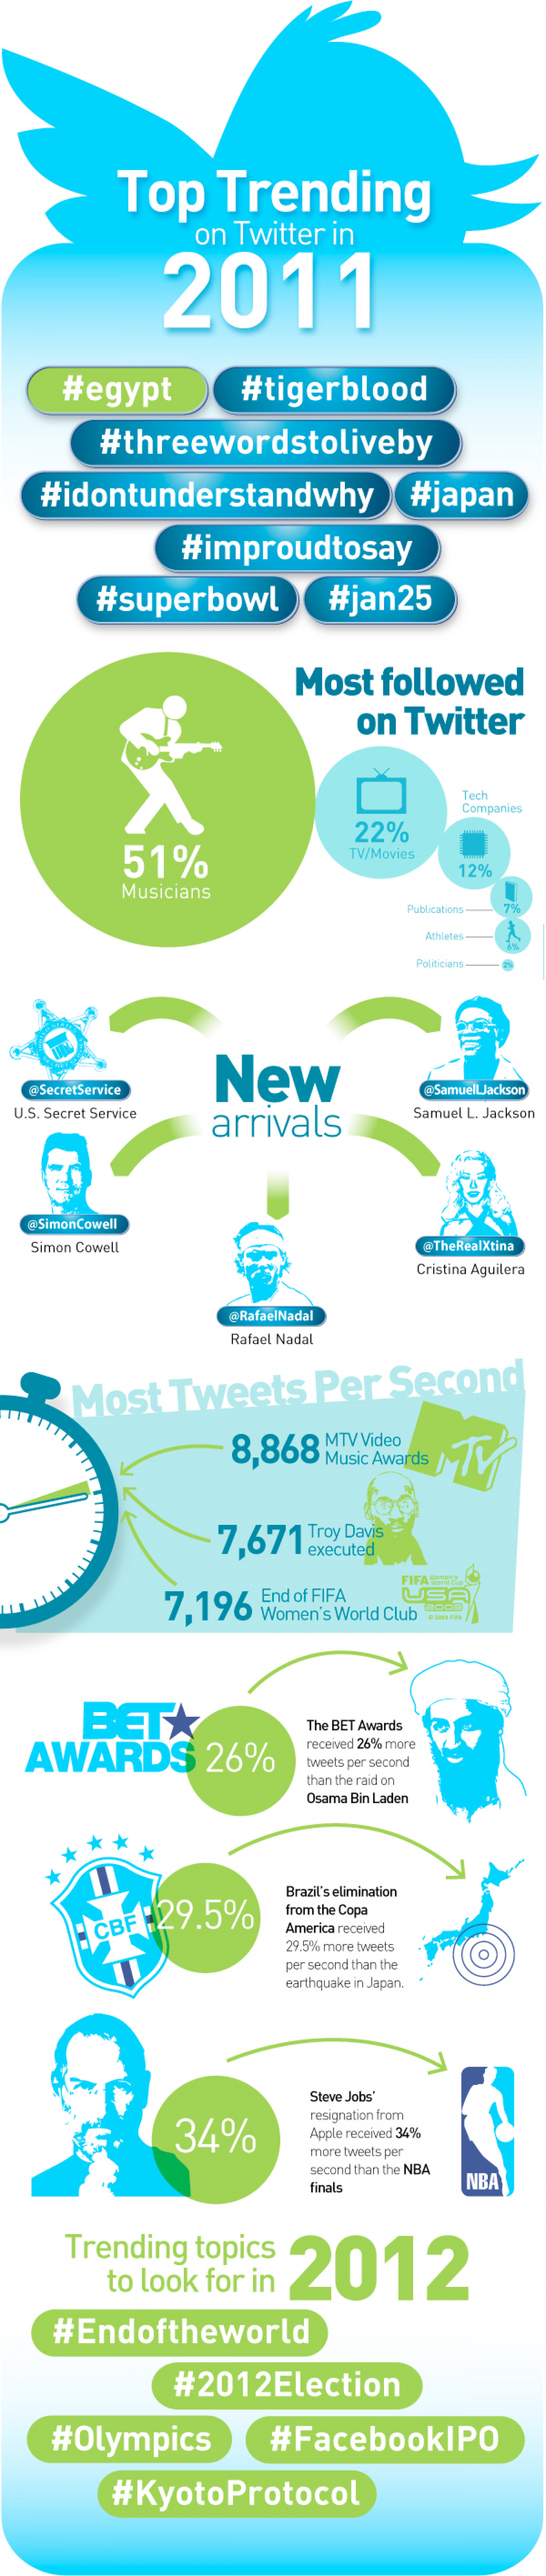 A Year in REview Infographic